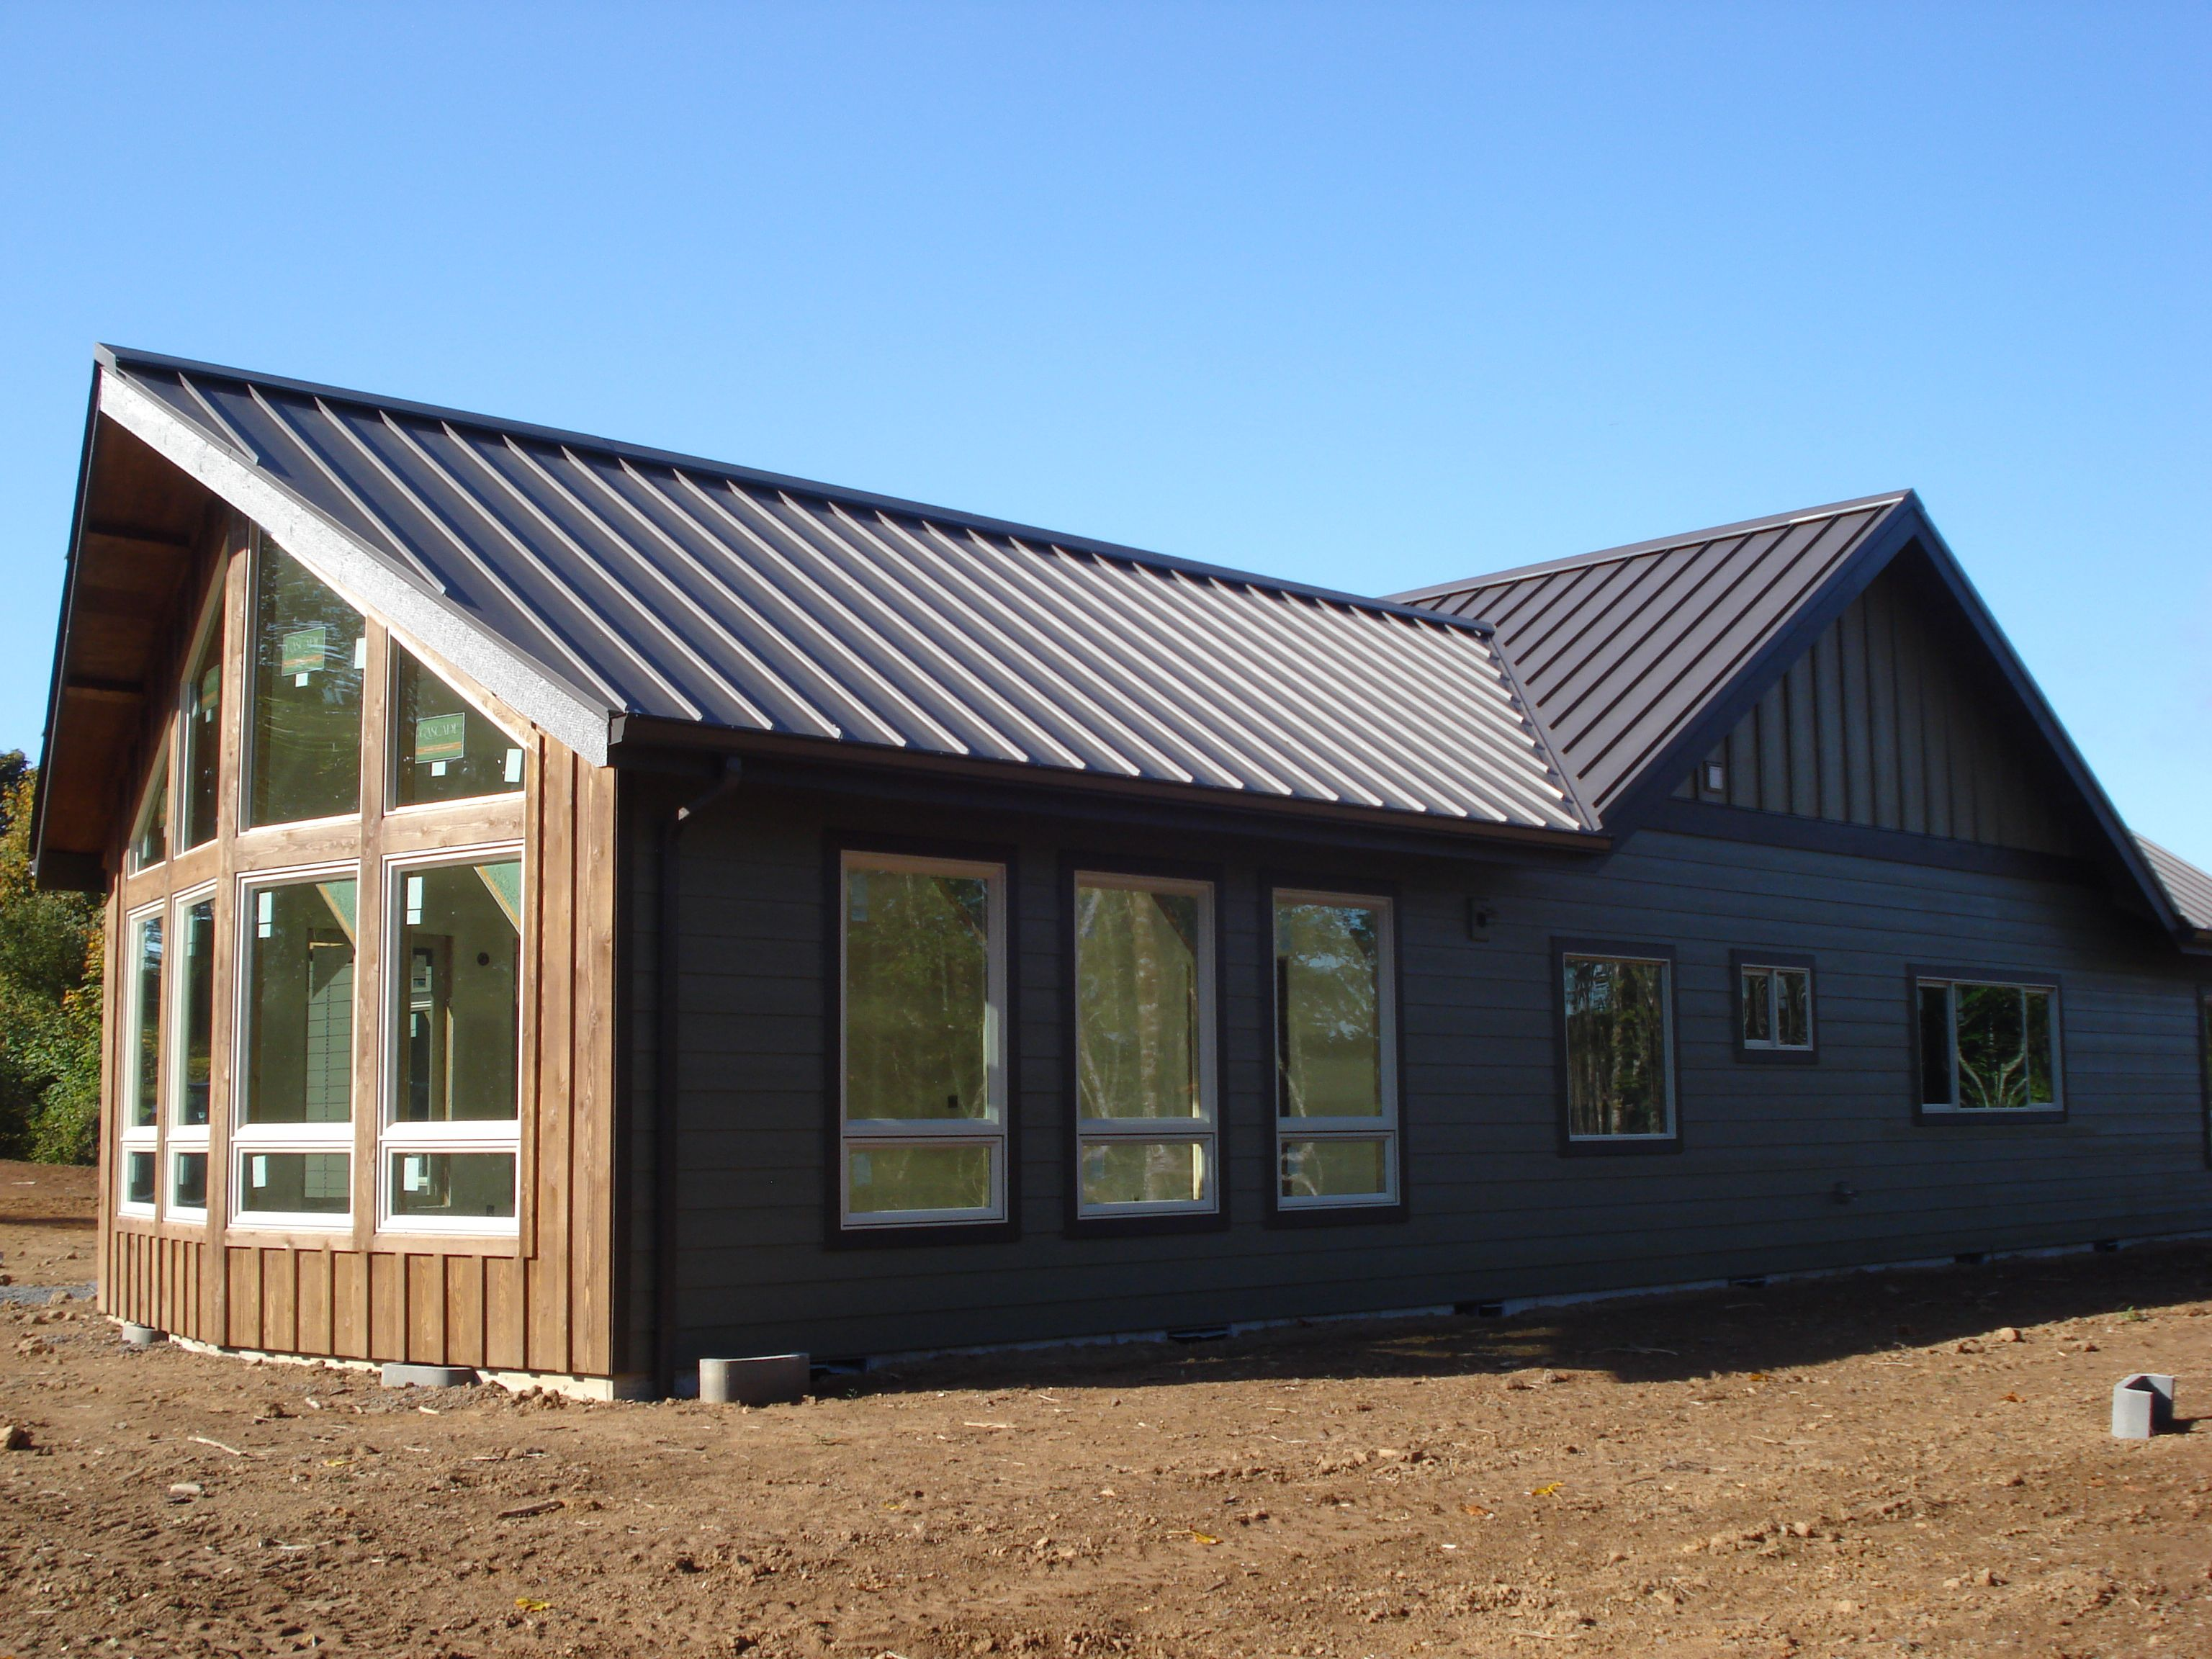 Metal Building Design Ideas metal building homes prices modern metal building homes modern Metal Roofs Installed On Homes And Commercial Buildings Are Called Standing Seam Metal Roofs Description